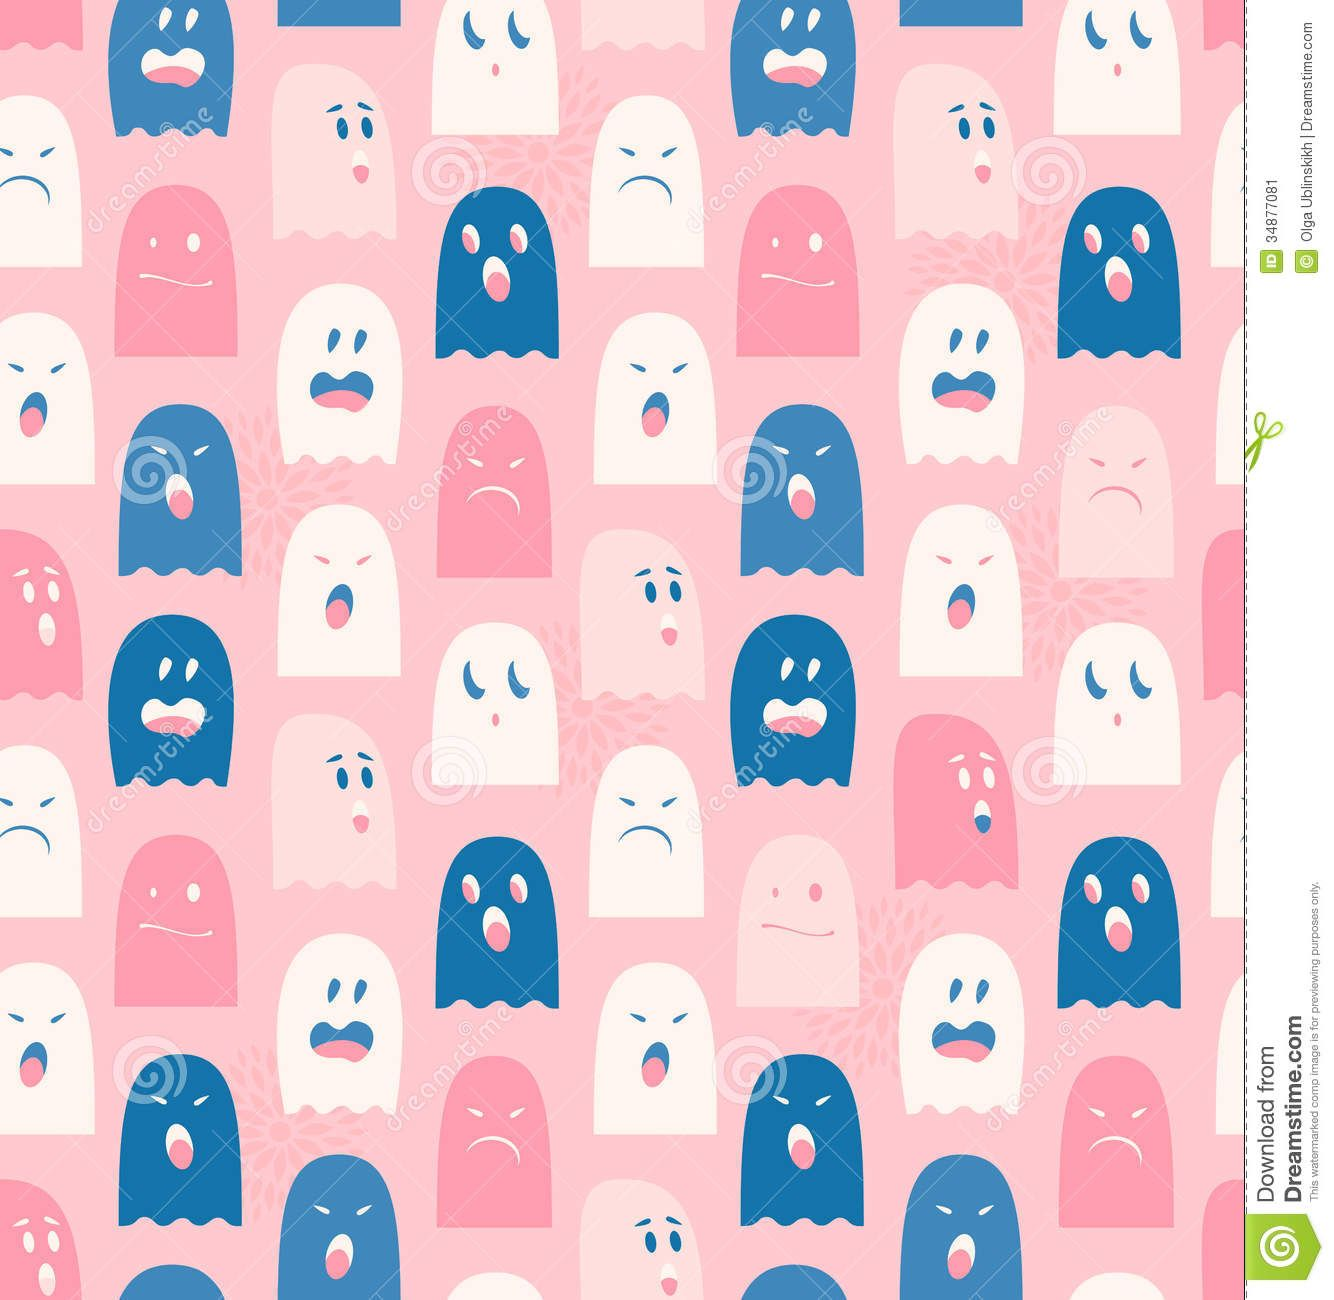 Ghostly clipart cute tumblr.